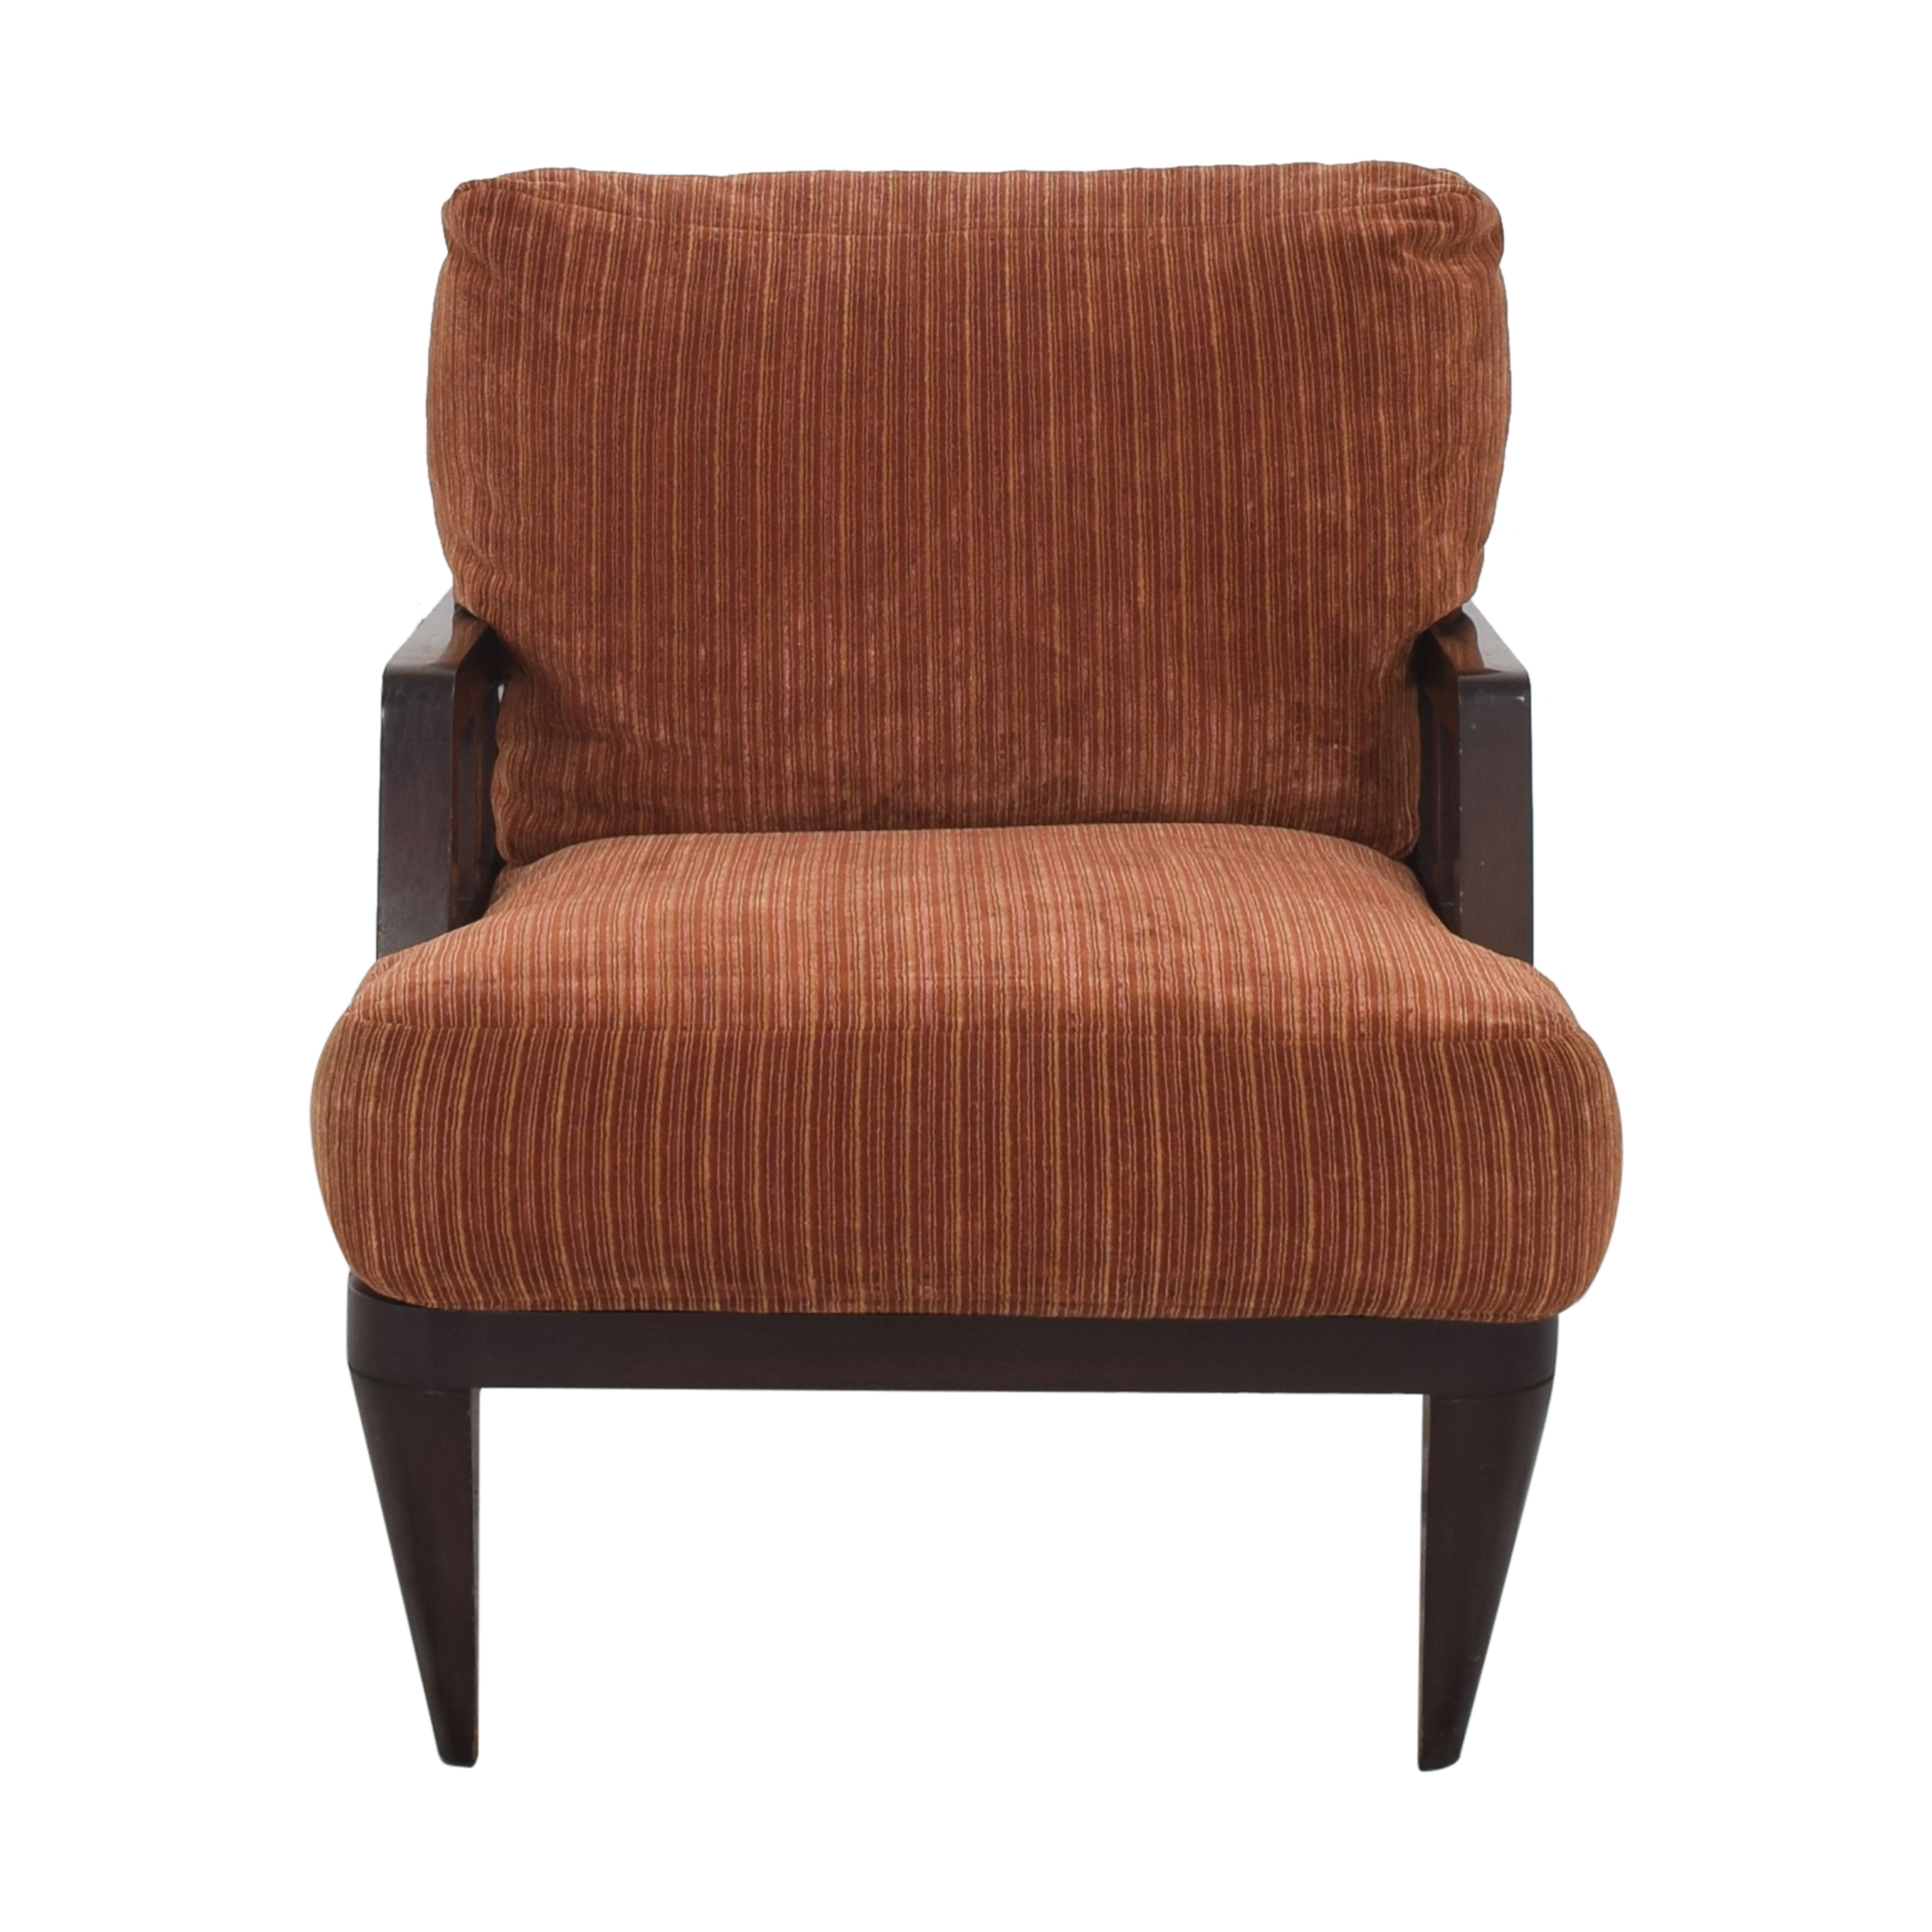 buy Berman | Rosetti Fretwork Lounge Armchair Berman | Rosetti